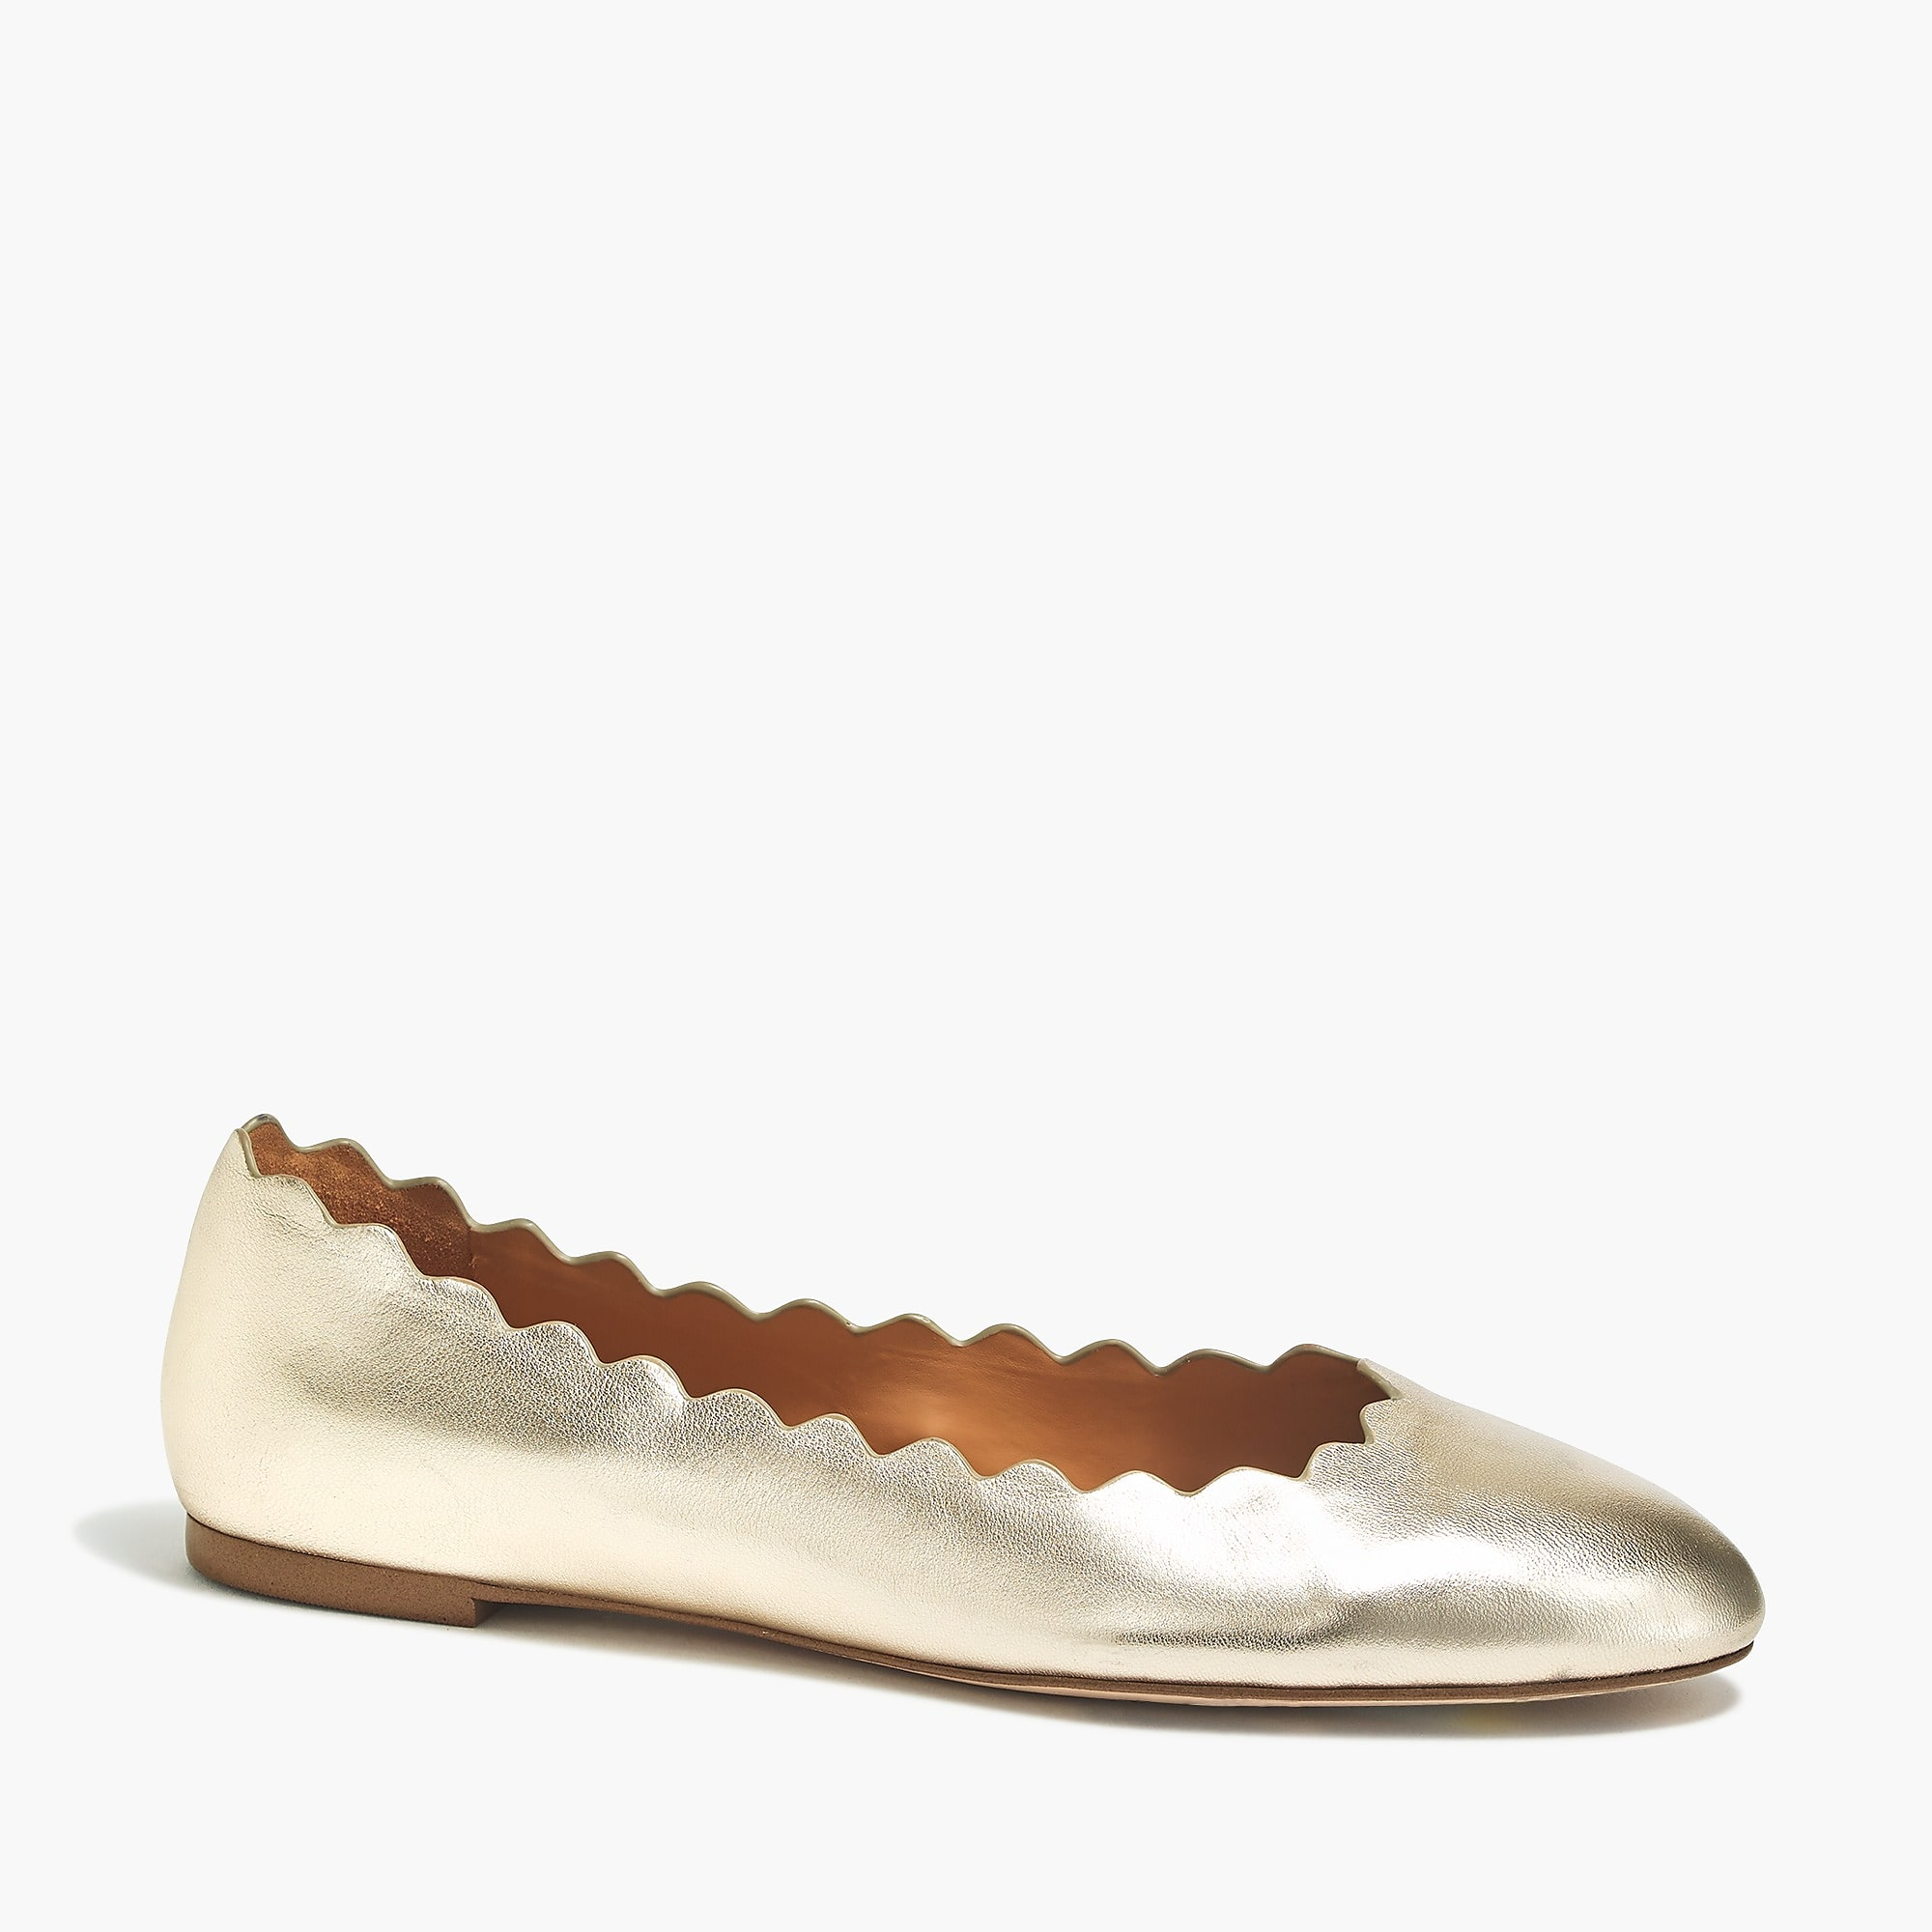 Metallic Scalloped Edge Flats